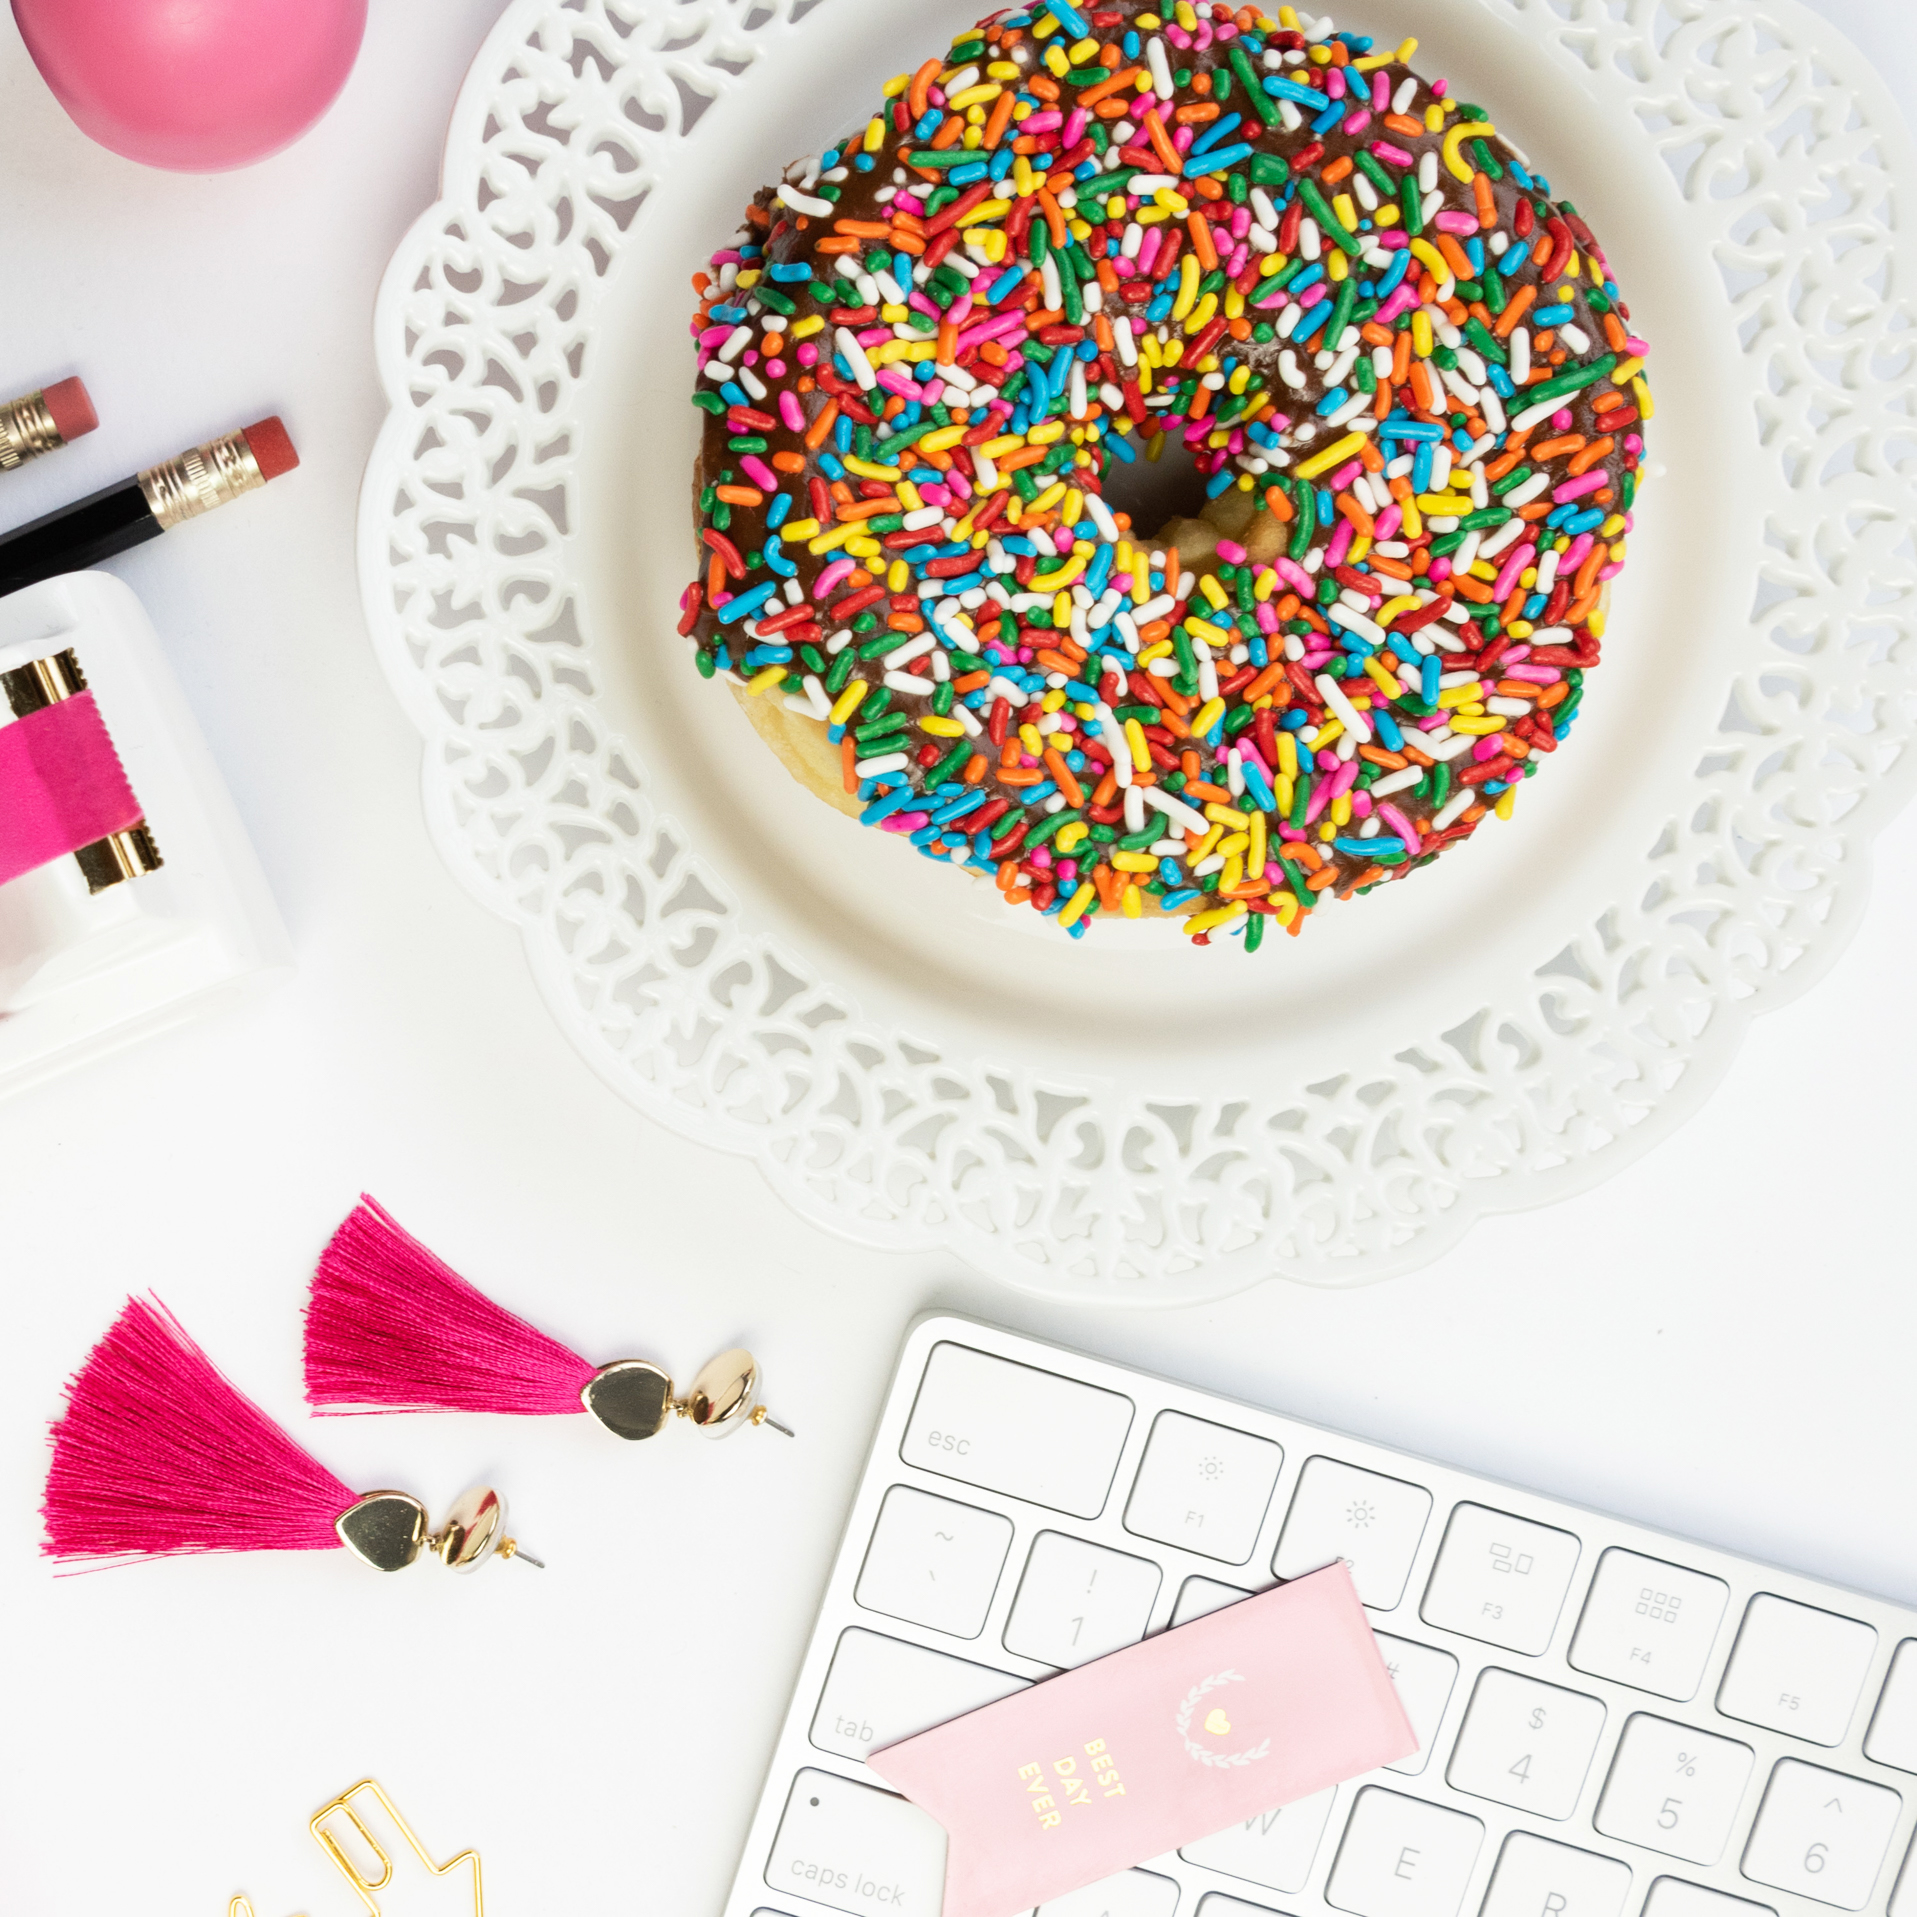 flat lay with colorful office supplies, photographed by jamie bannon photography.